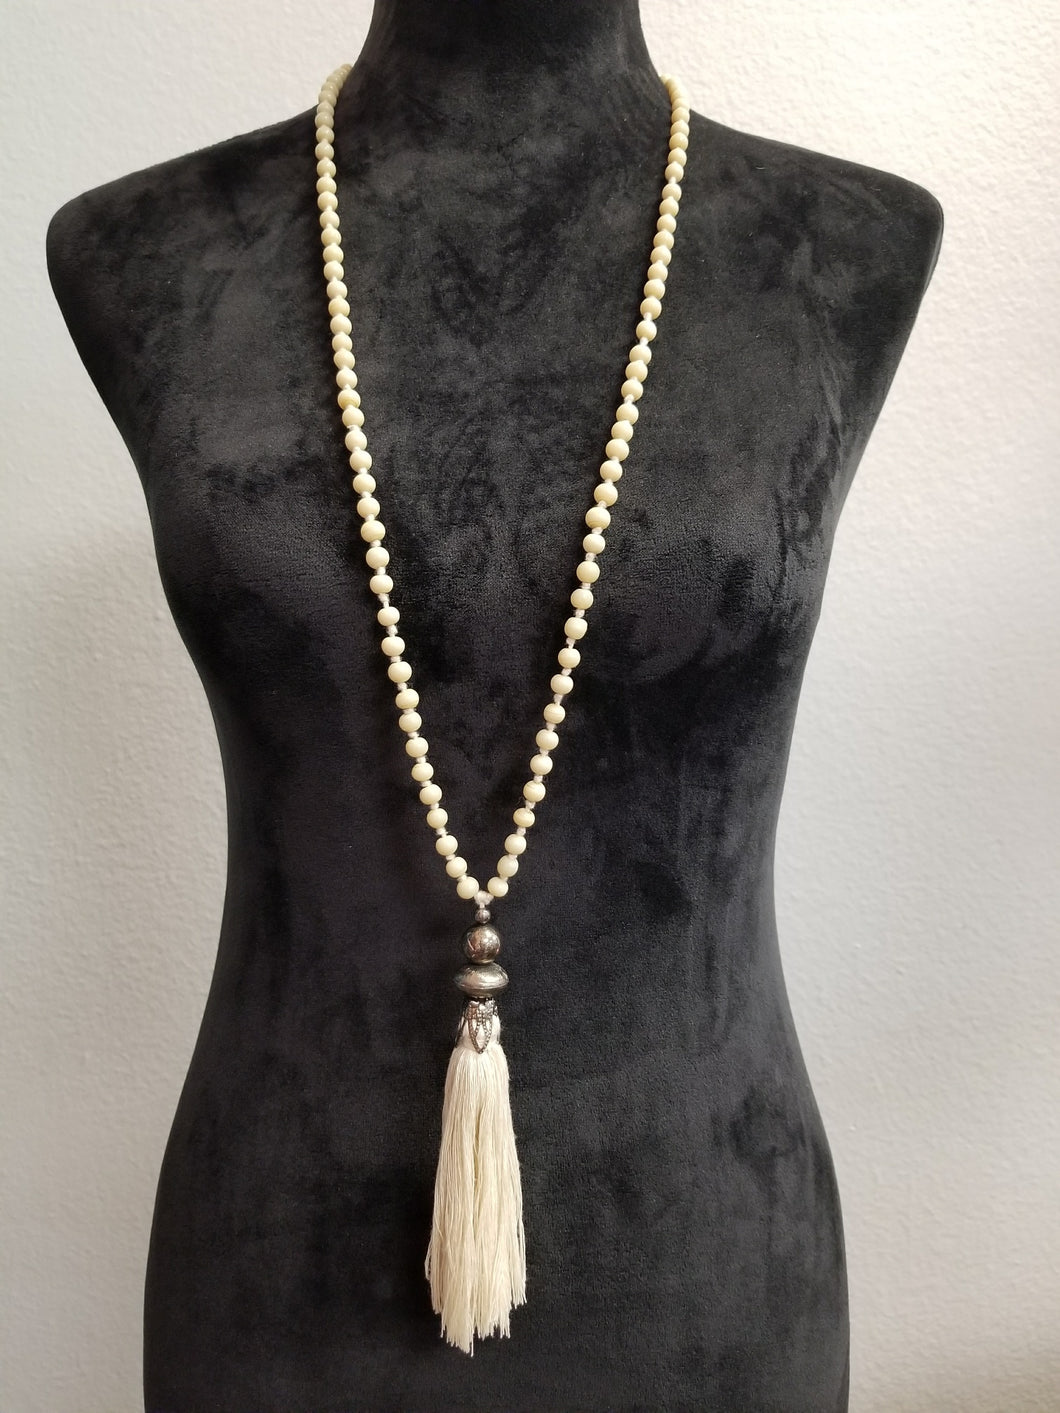 Off White Beaded Necklace w/Tassel